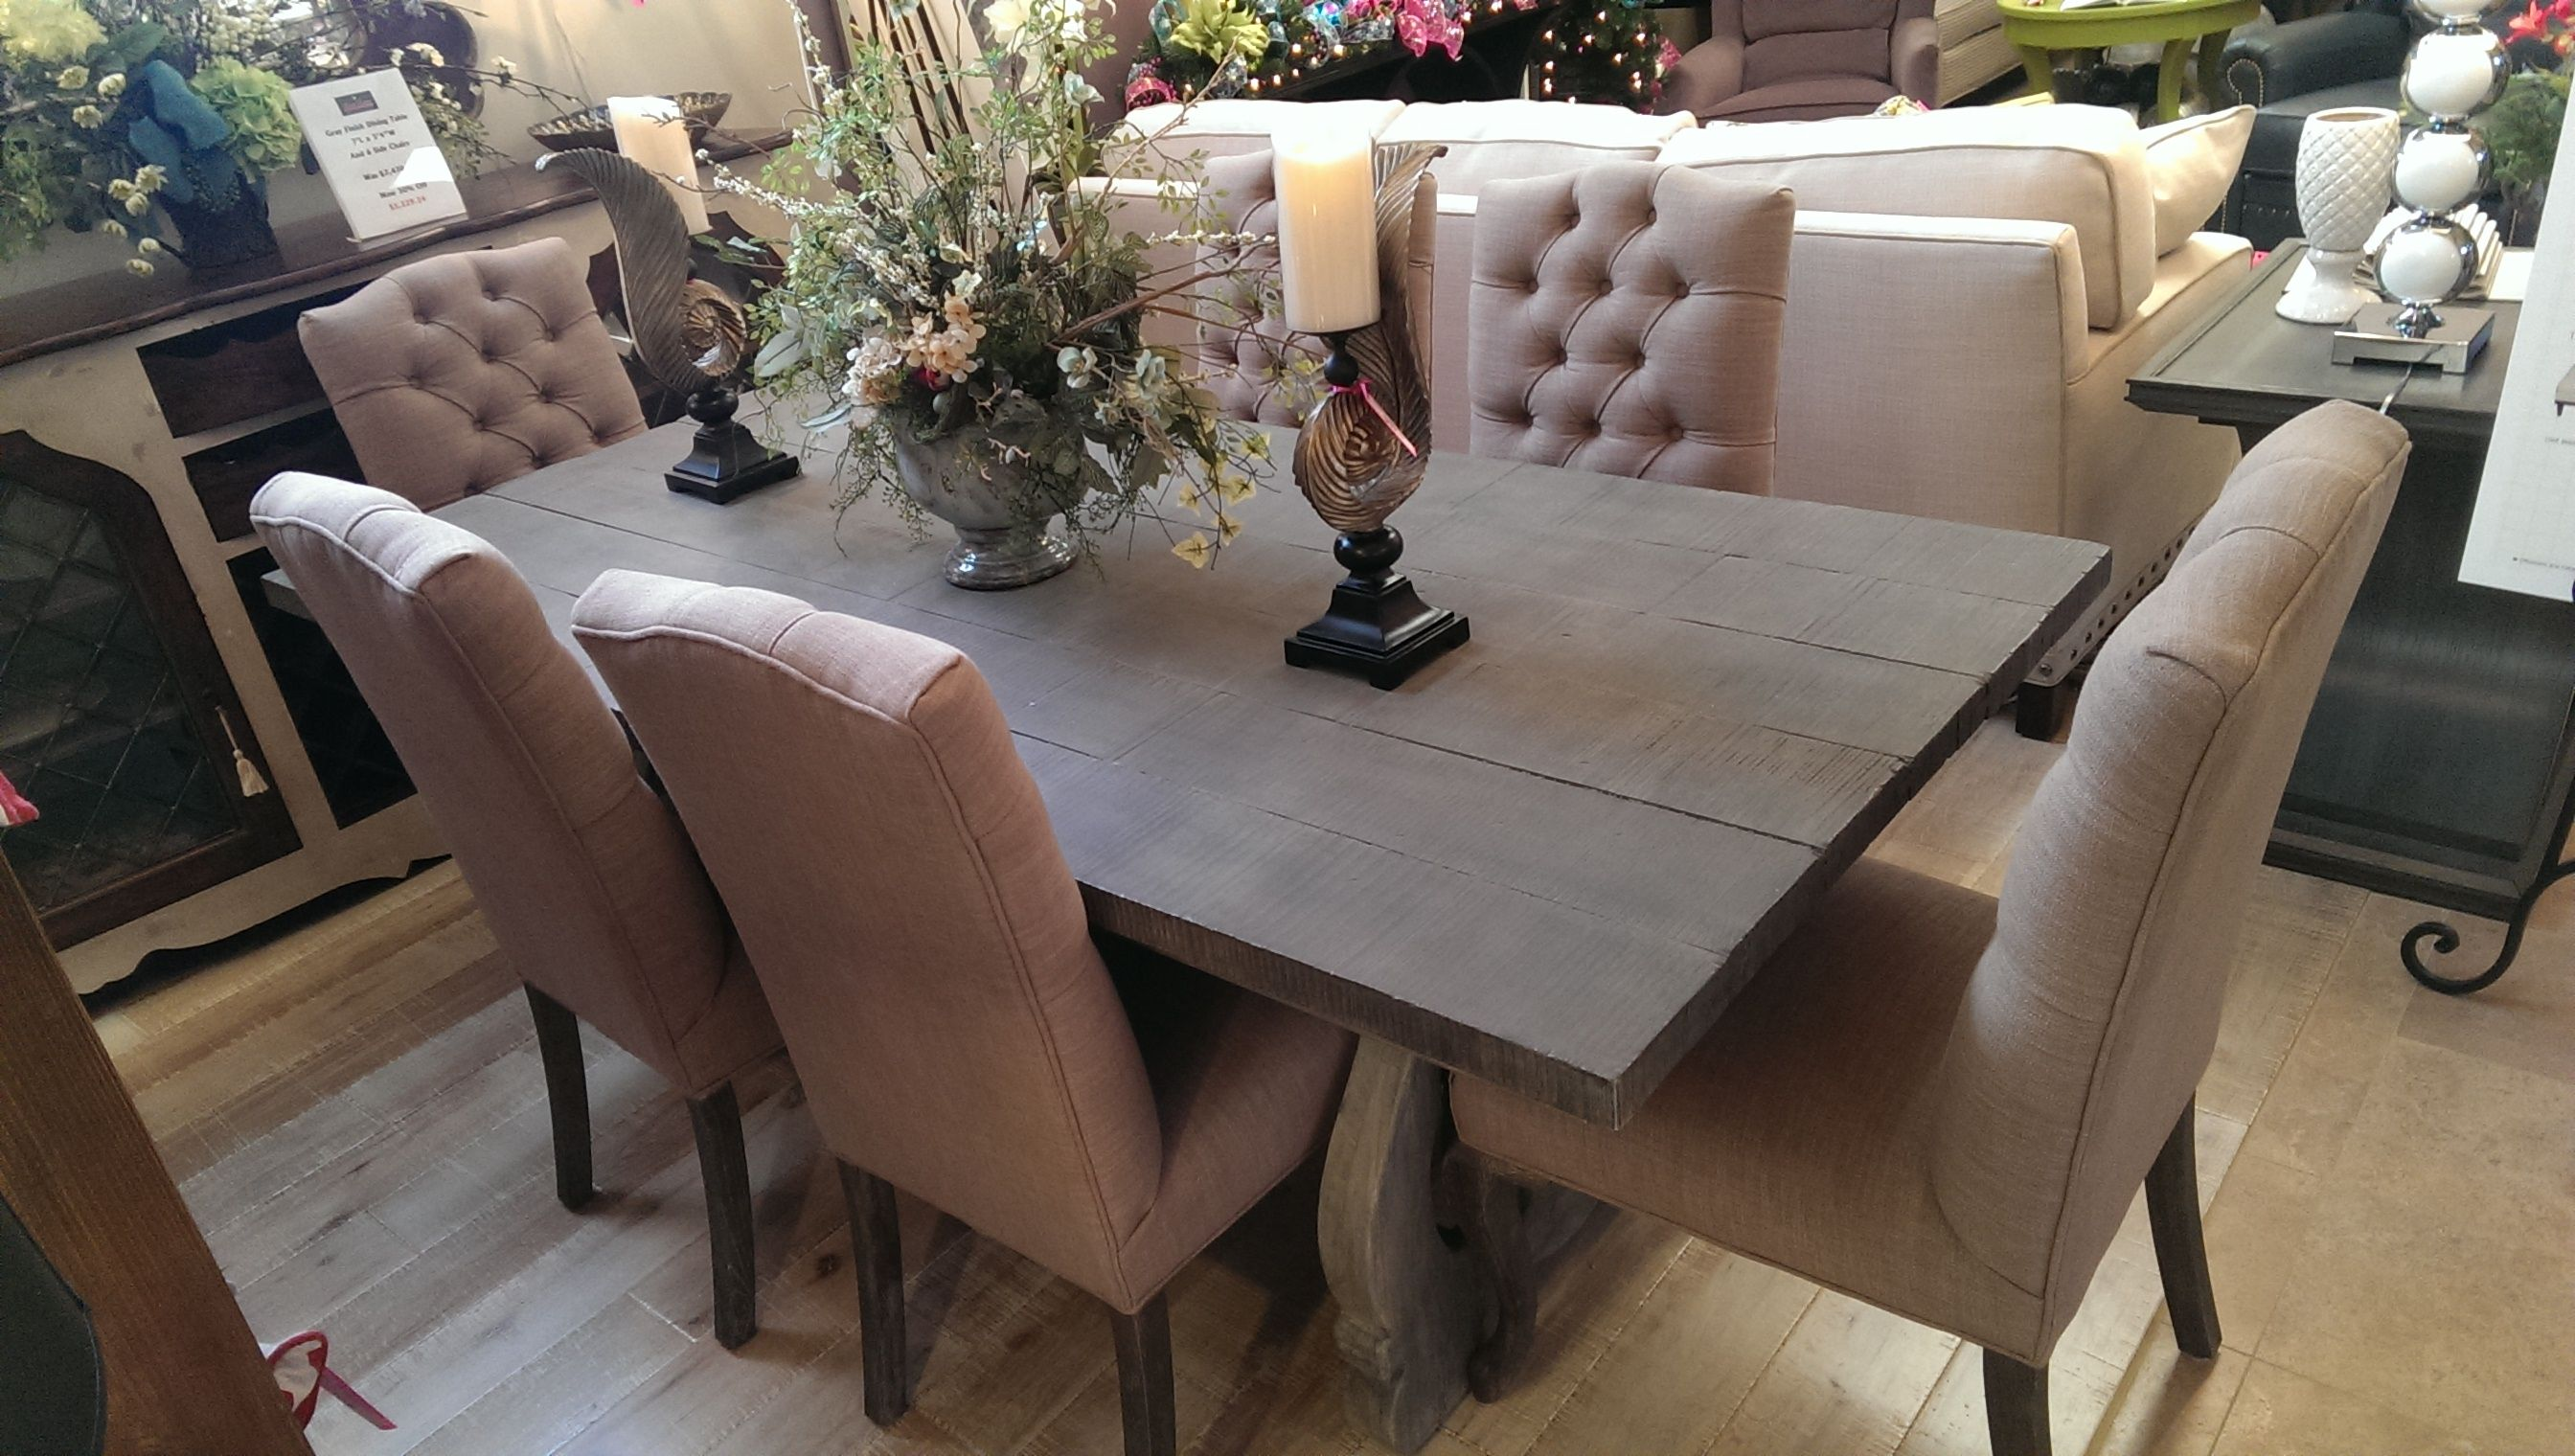 Grey Dining Table W 6 Chairs Was $747050 Now $400000  Office Beauteous Grey Dining Room Chairs Review